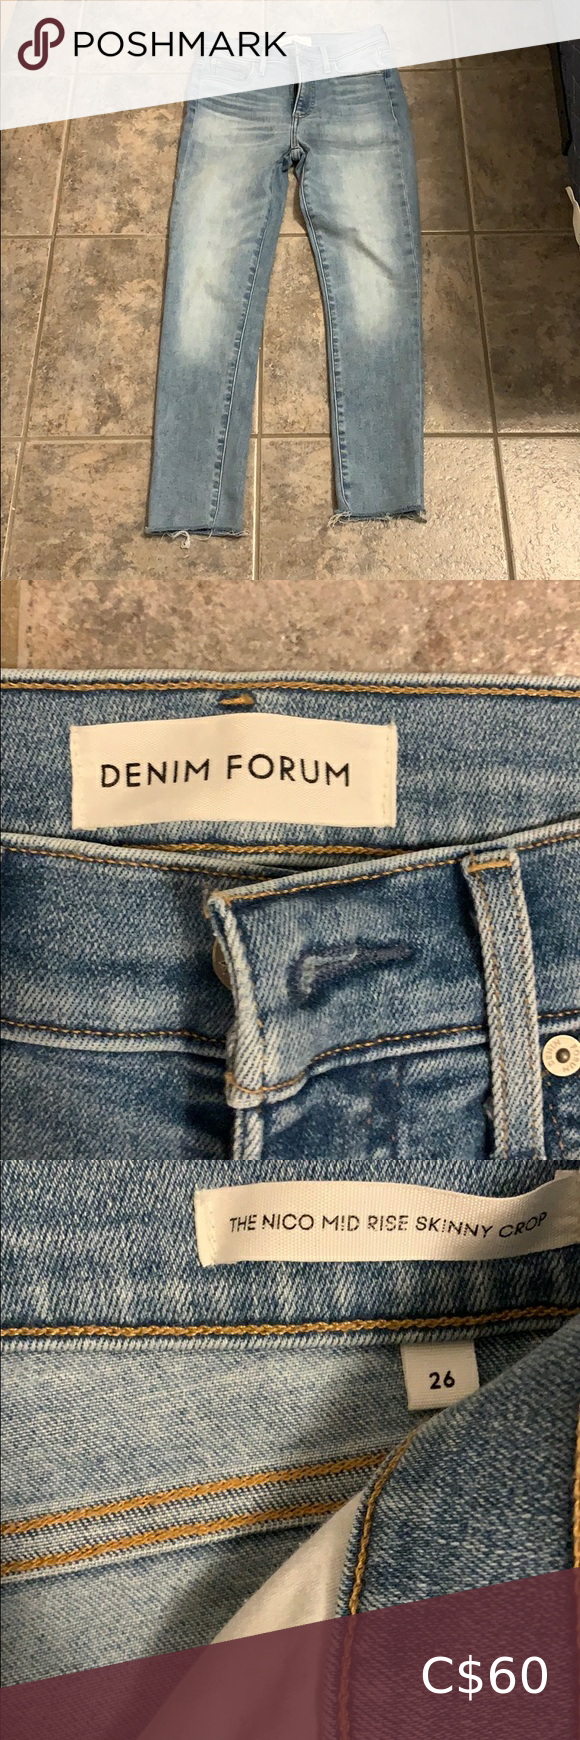 Photo of Denim Forum jeans size 26